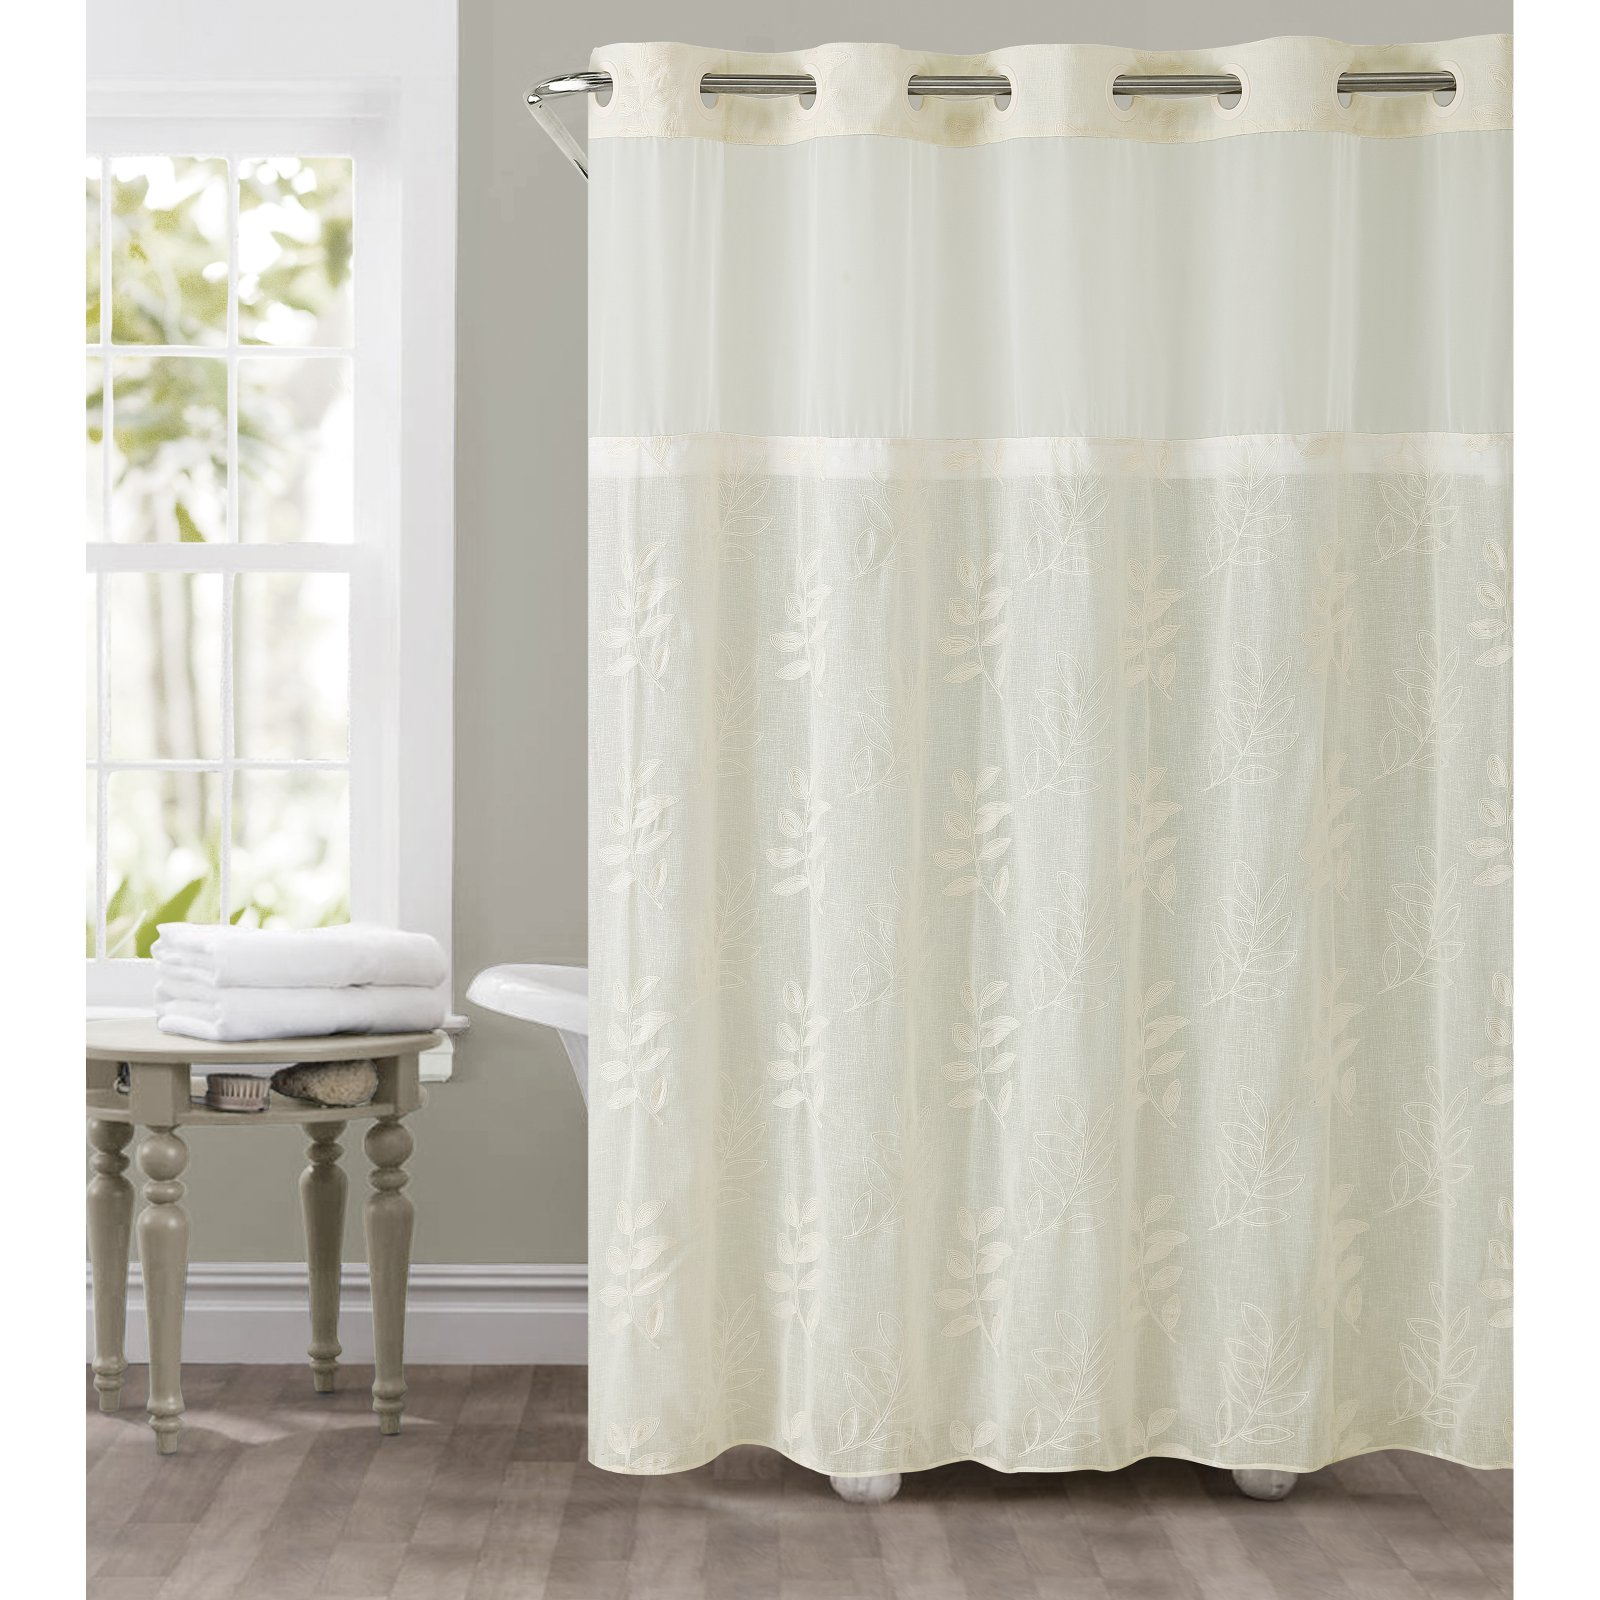 Hookless Ivory Palm Leaves Polyester Shower Curtain   Walmart.com